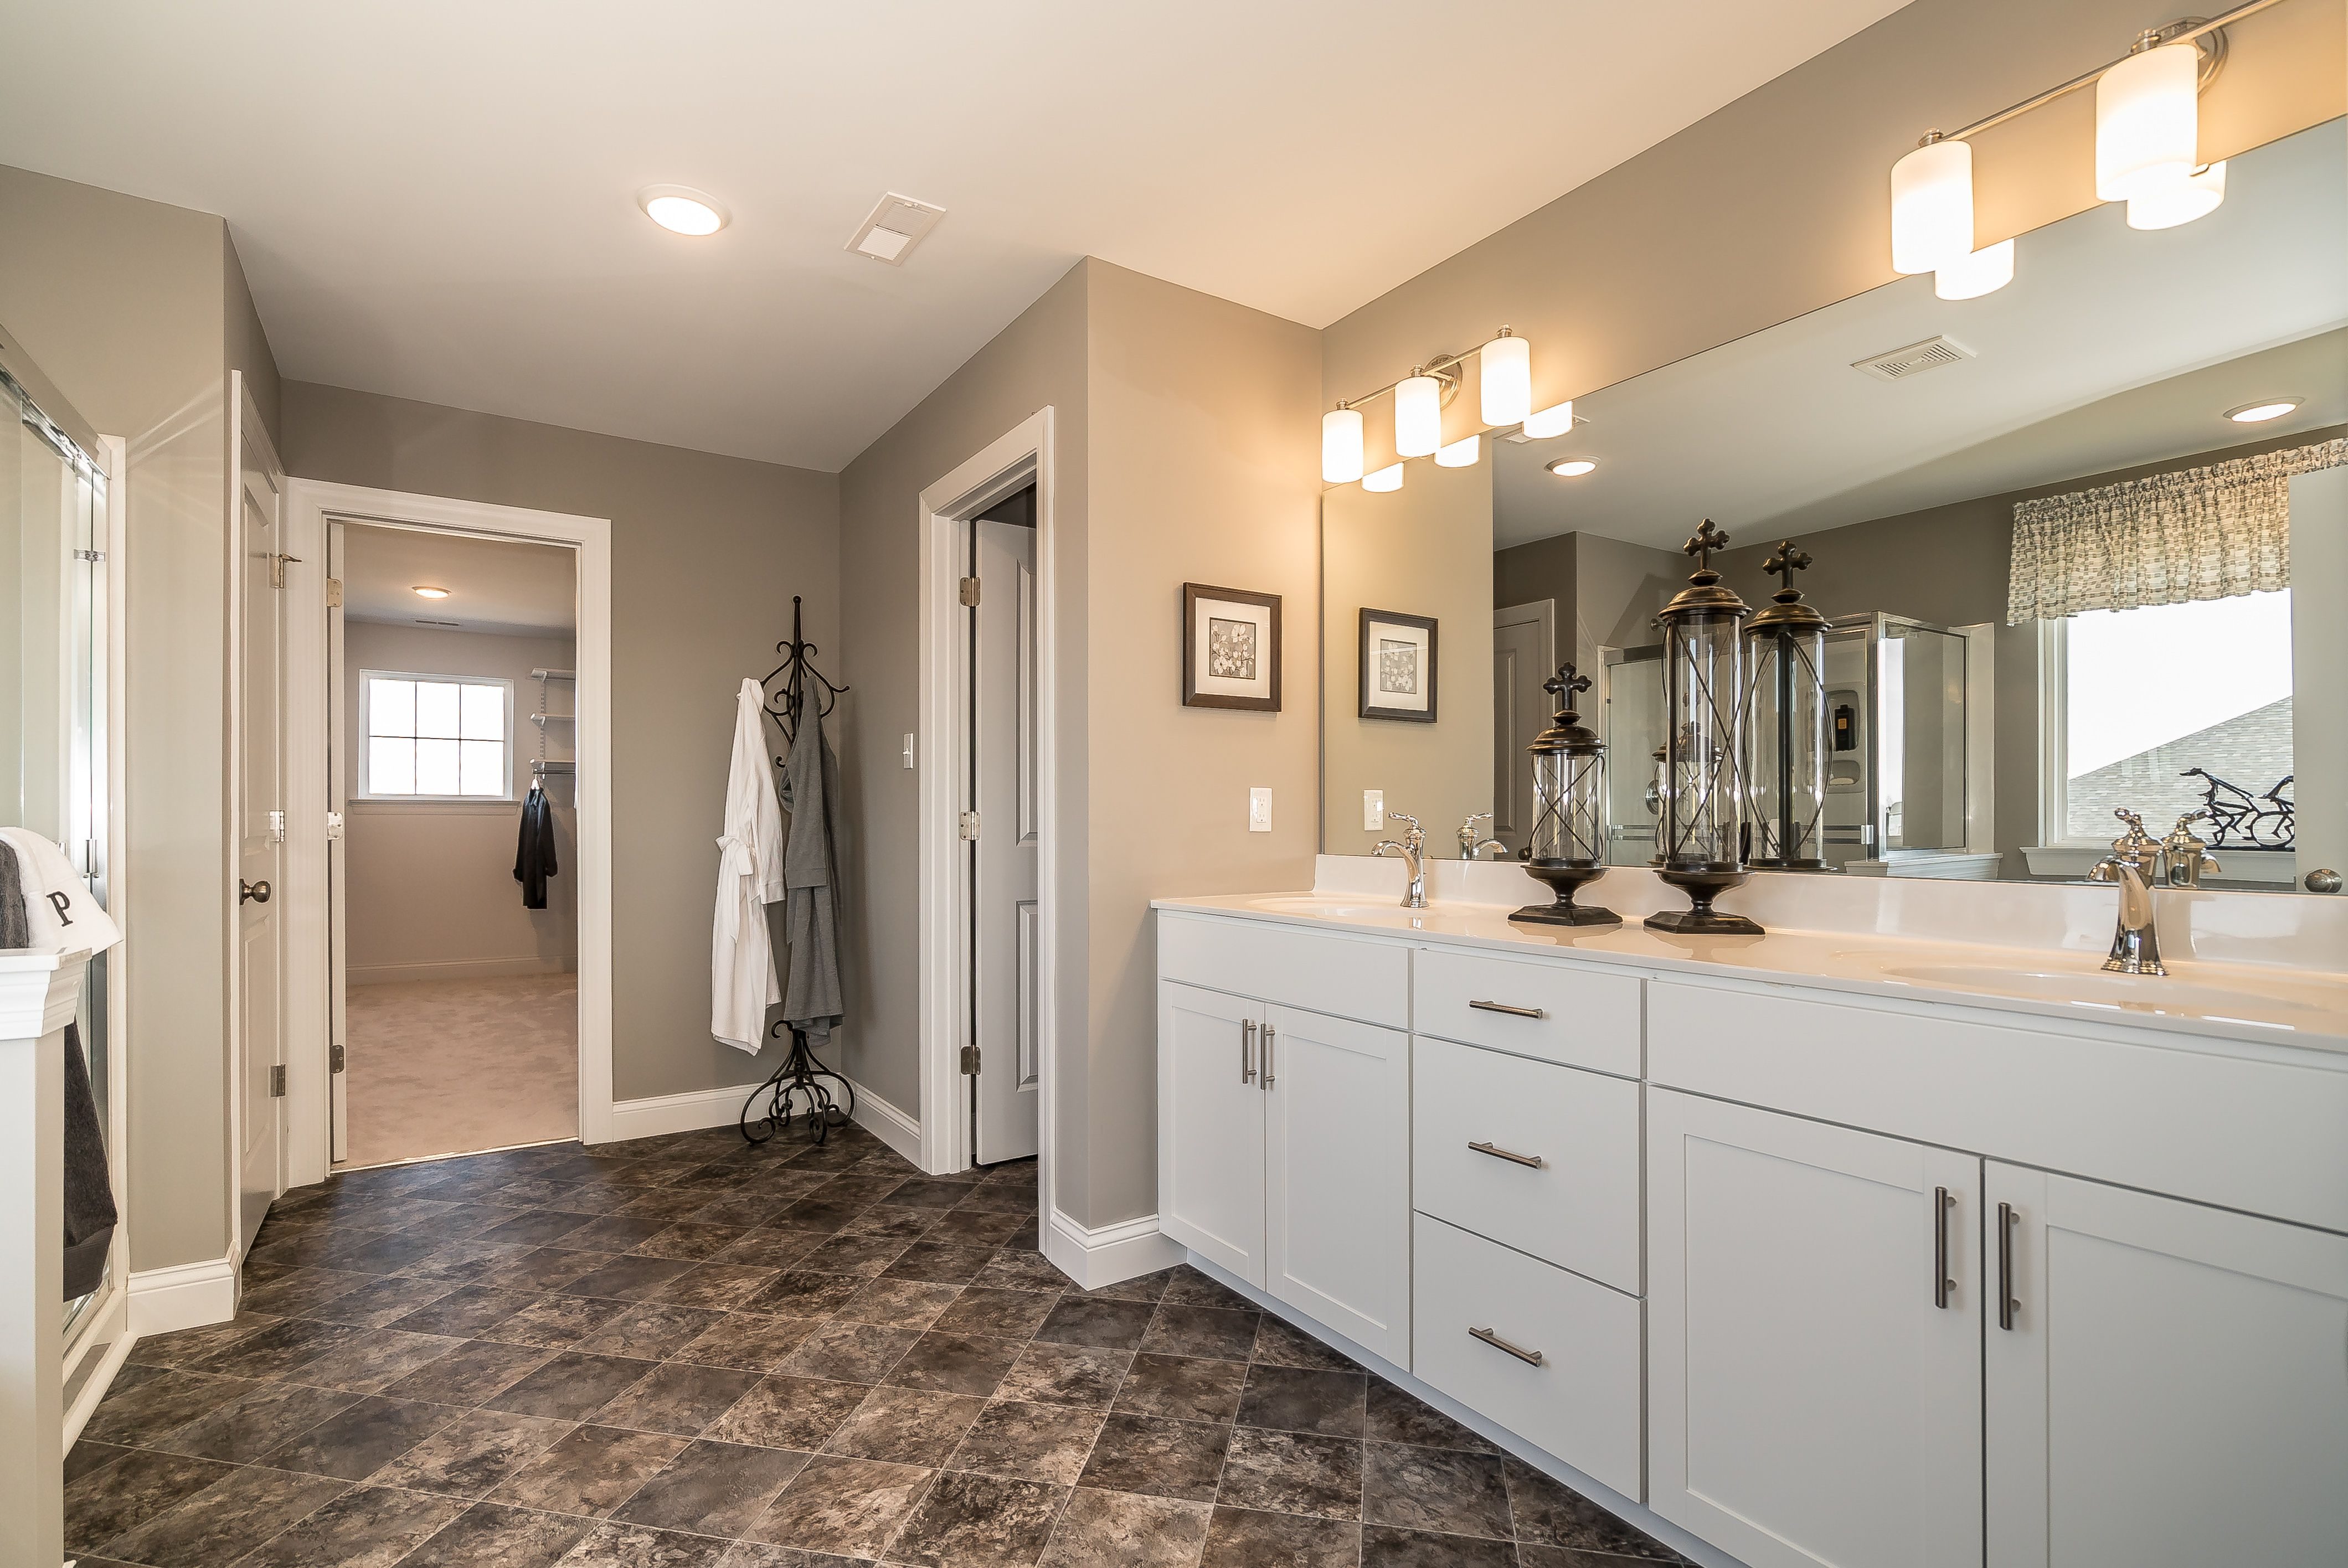 Master bath sink | Home builders, Home and family, Master ...